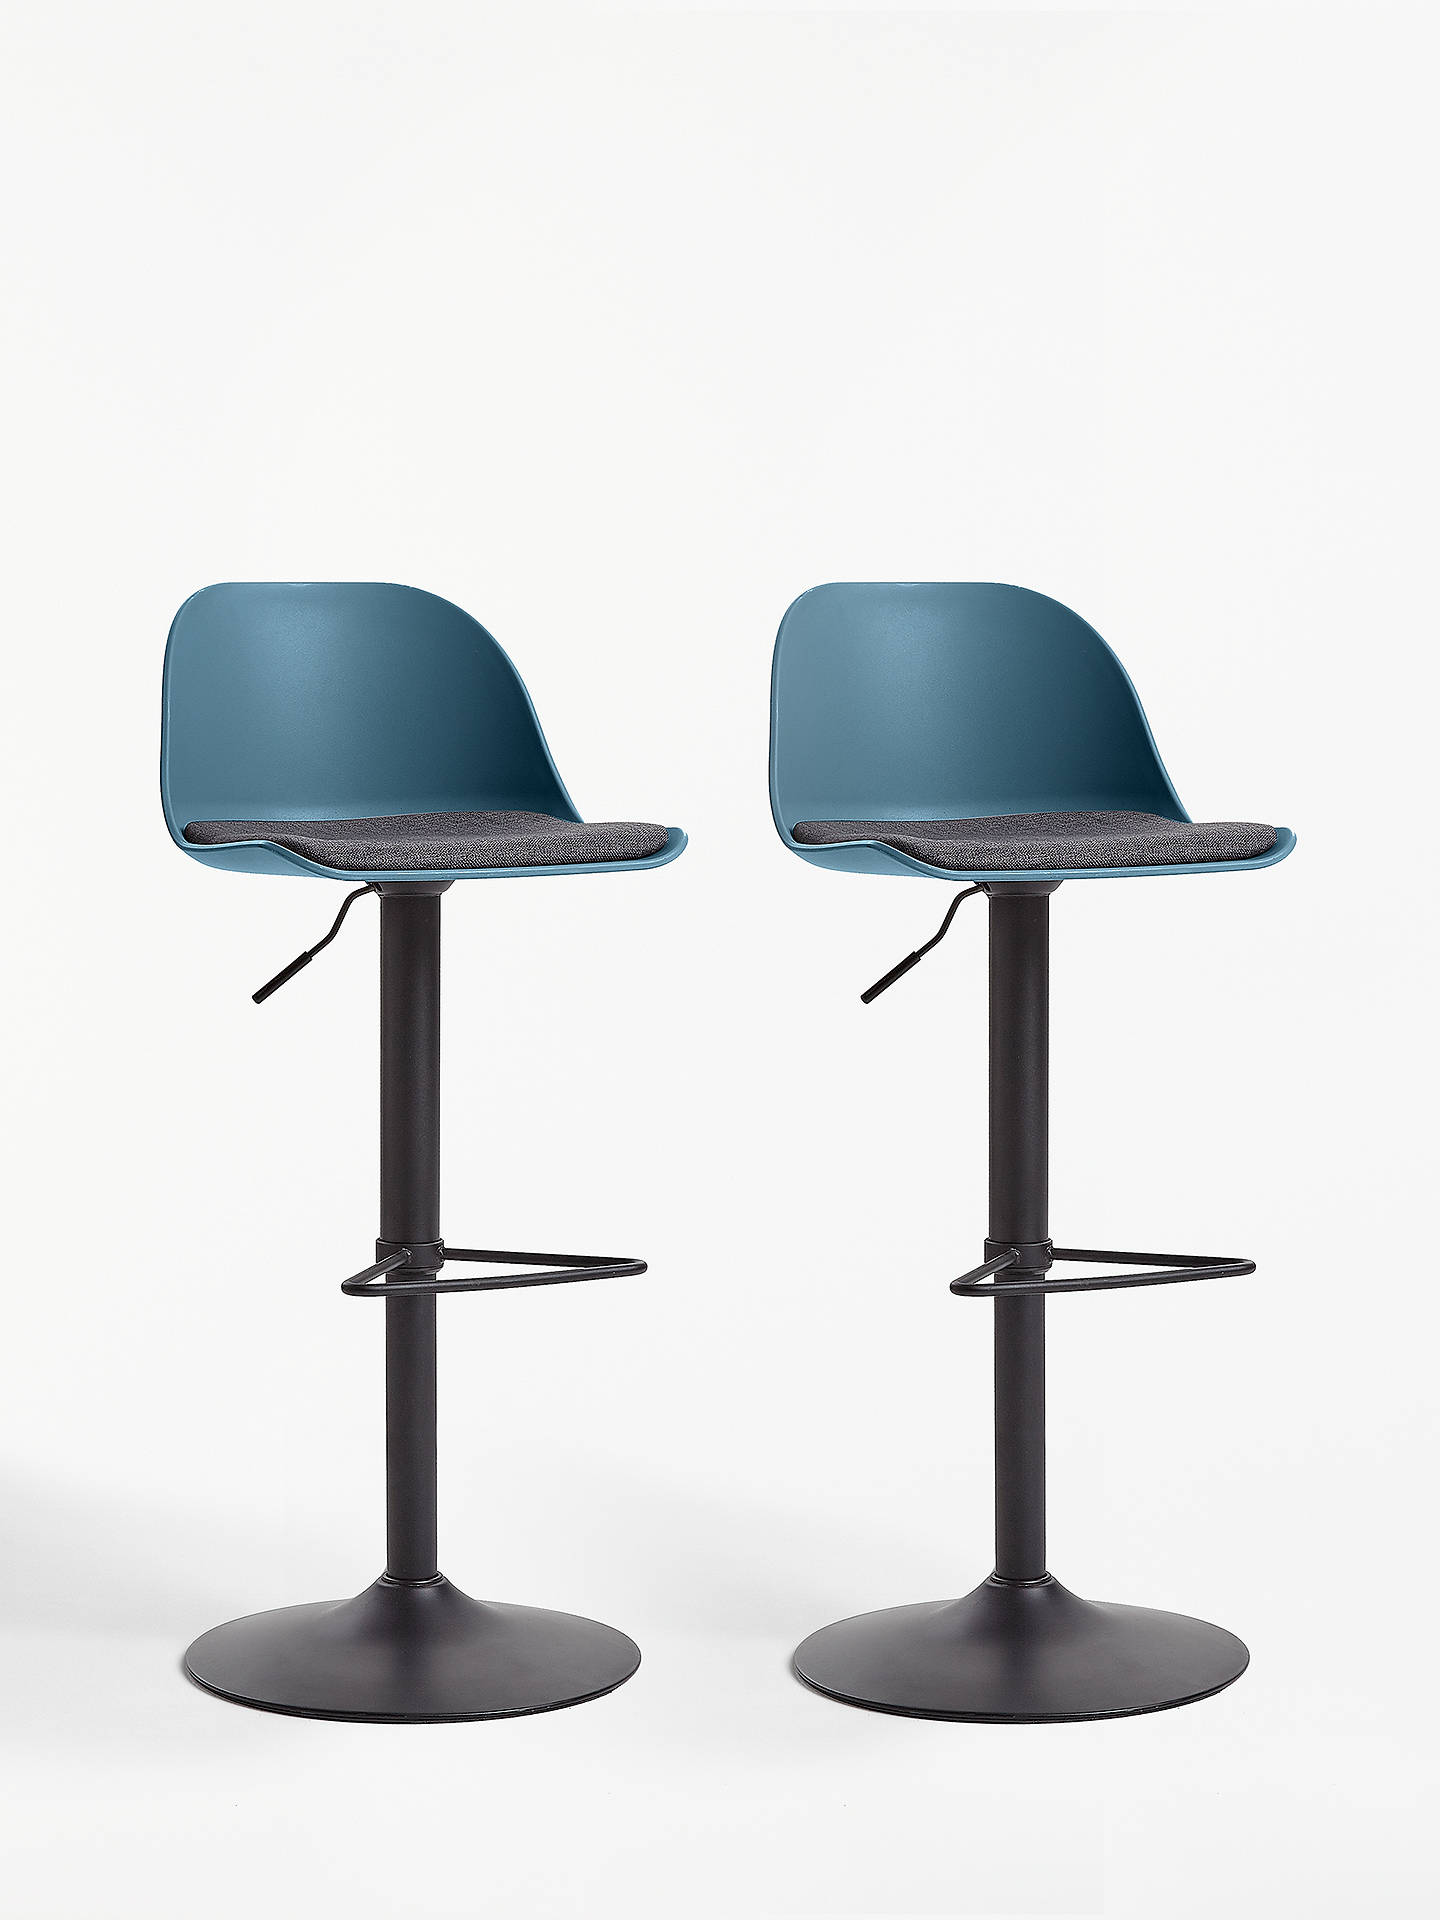 Buy House by John Lewis Whistler Gas Lift Adjustable Bar Stools, Set of 2, Navy Online at johnlewis.com